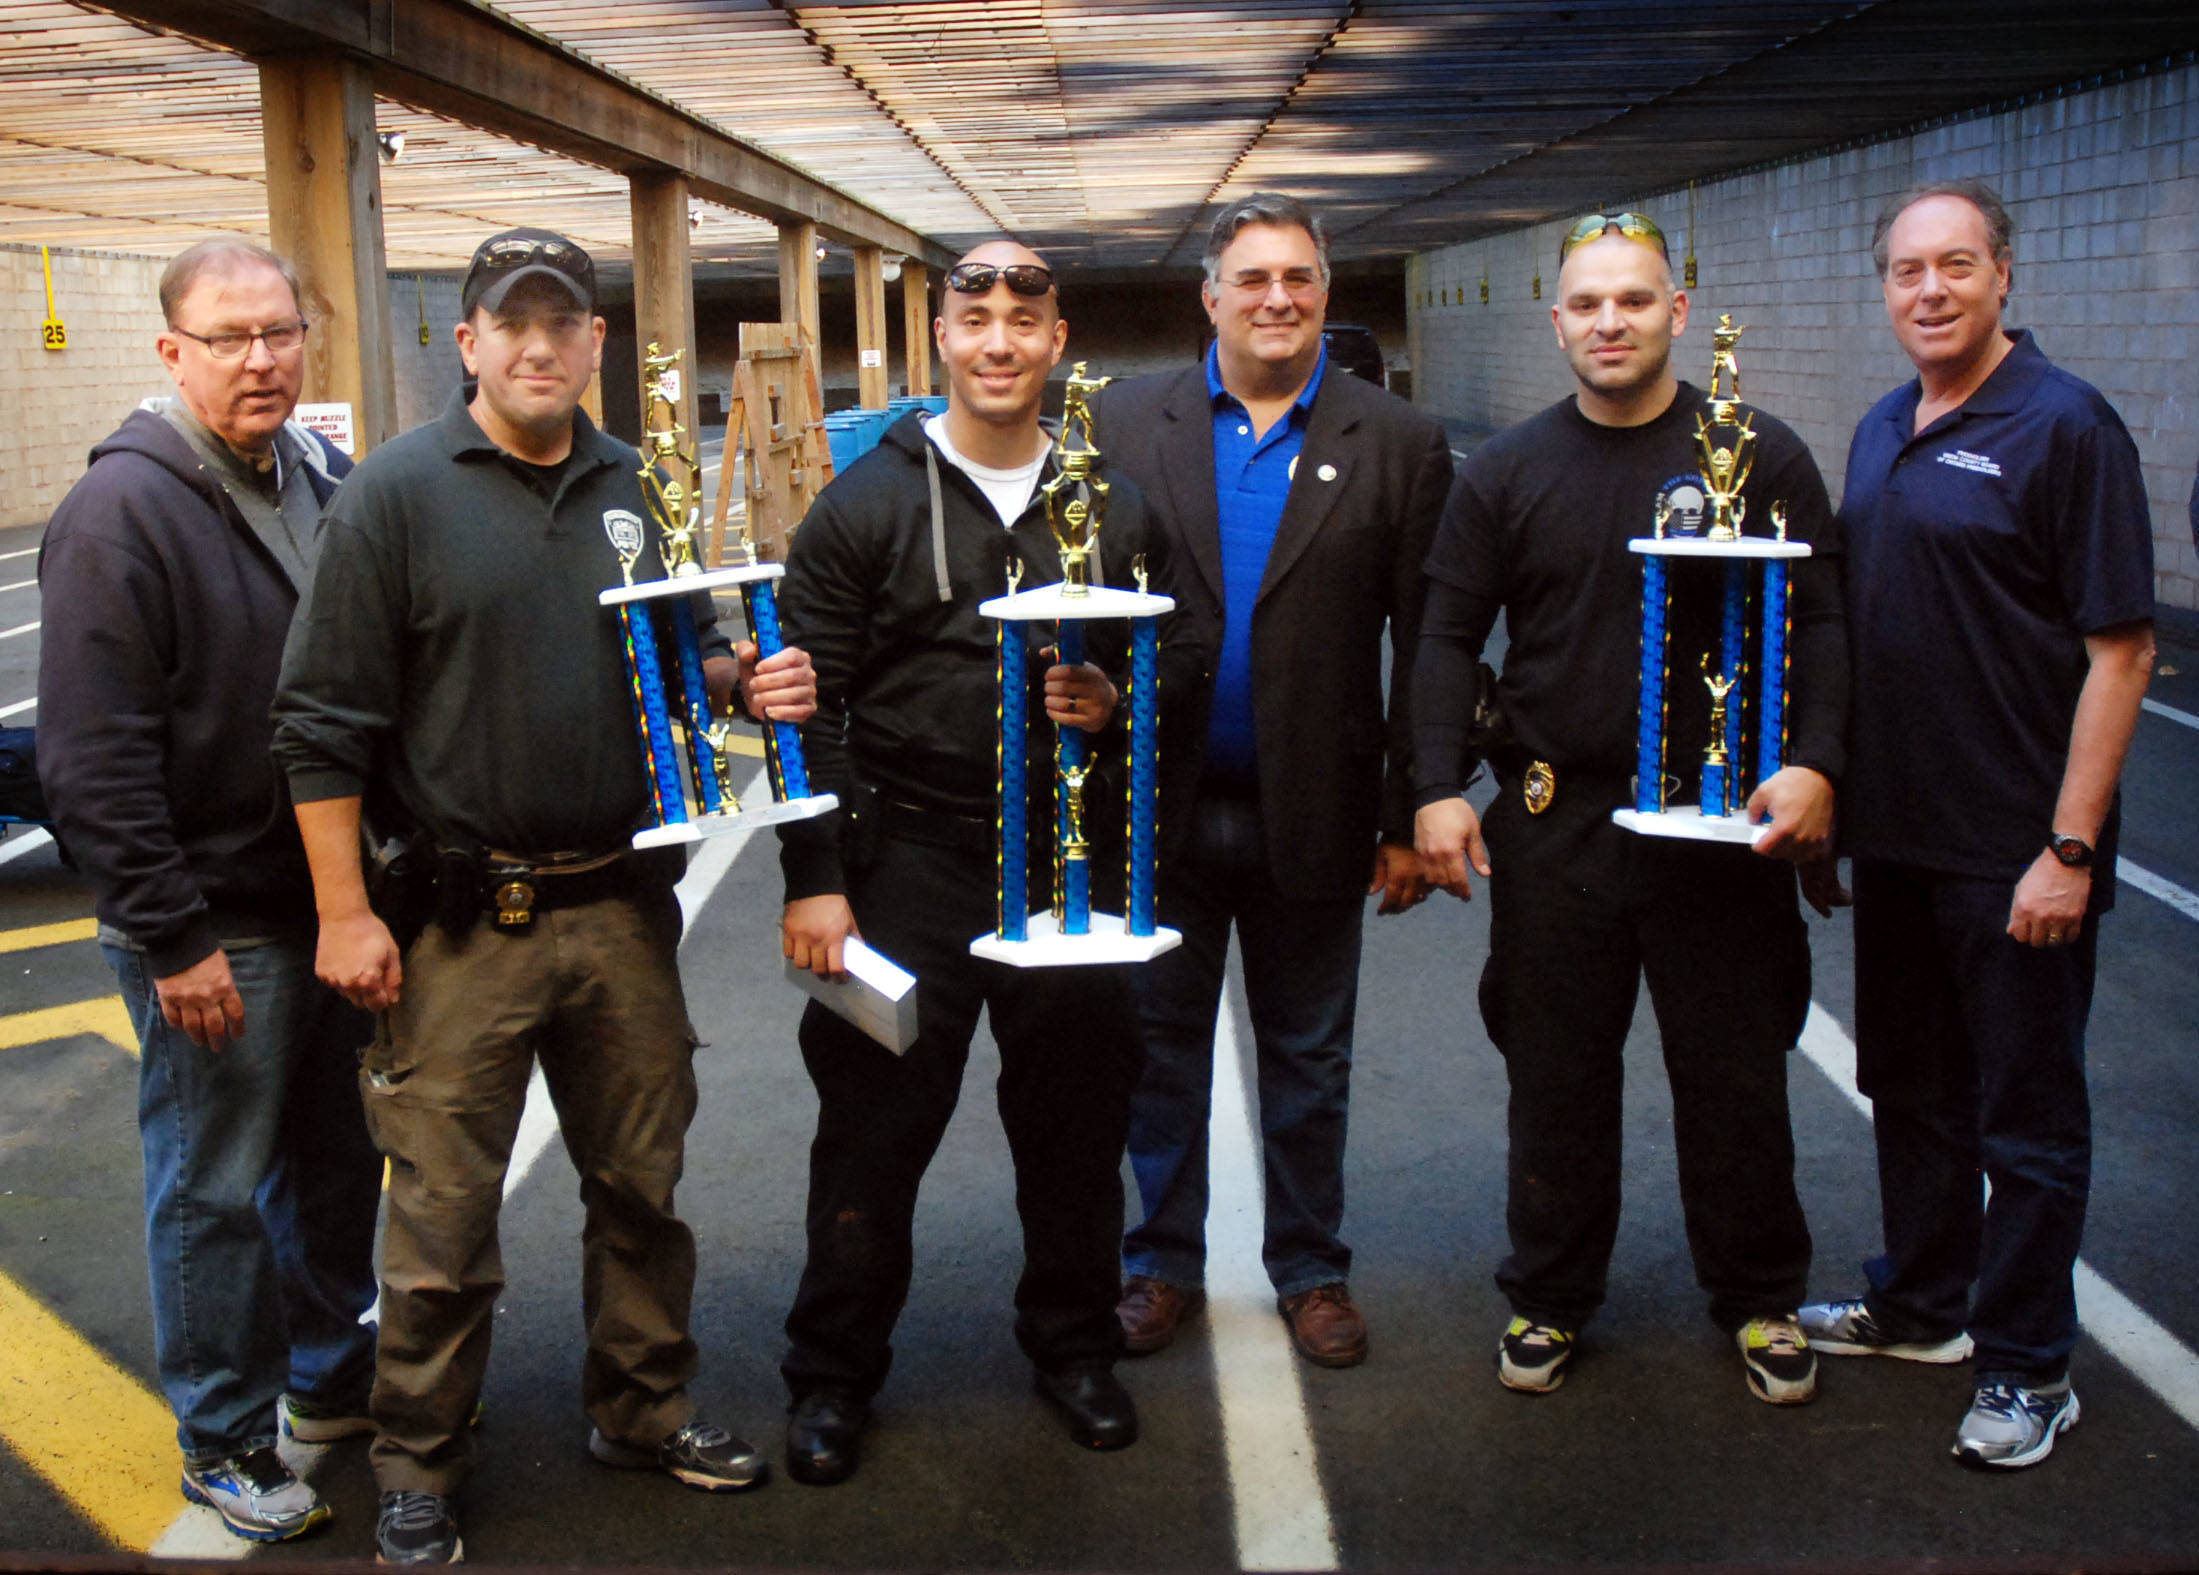 41d47a83f1d4b4fe7cbd_4e988b0bd615e936b5ff_Sheriff_s_Pistol_Competition.jpg